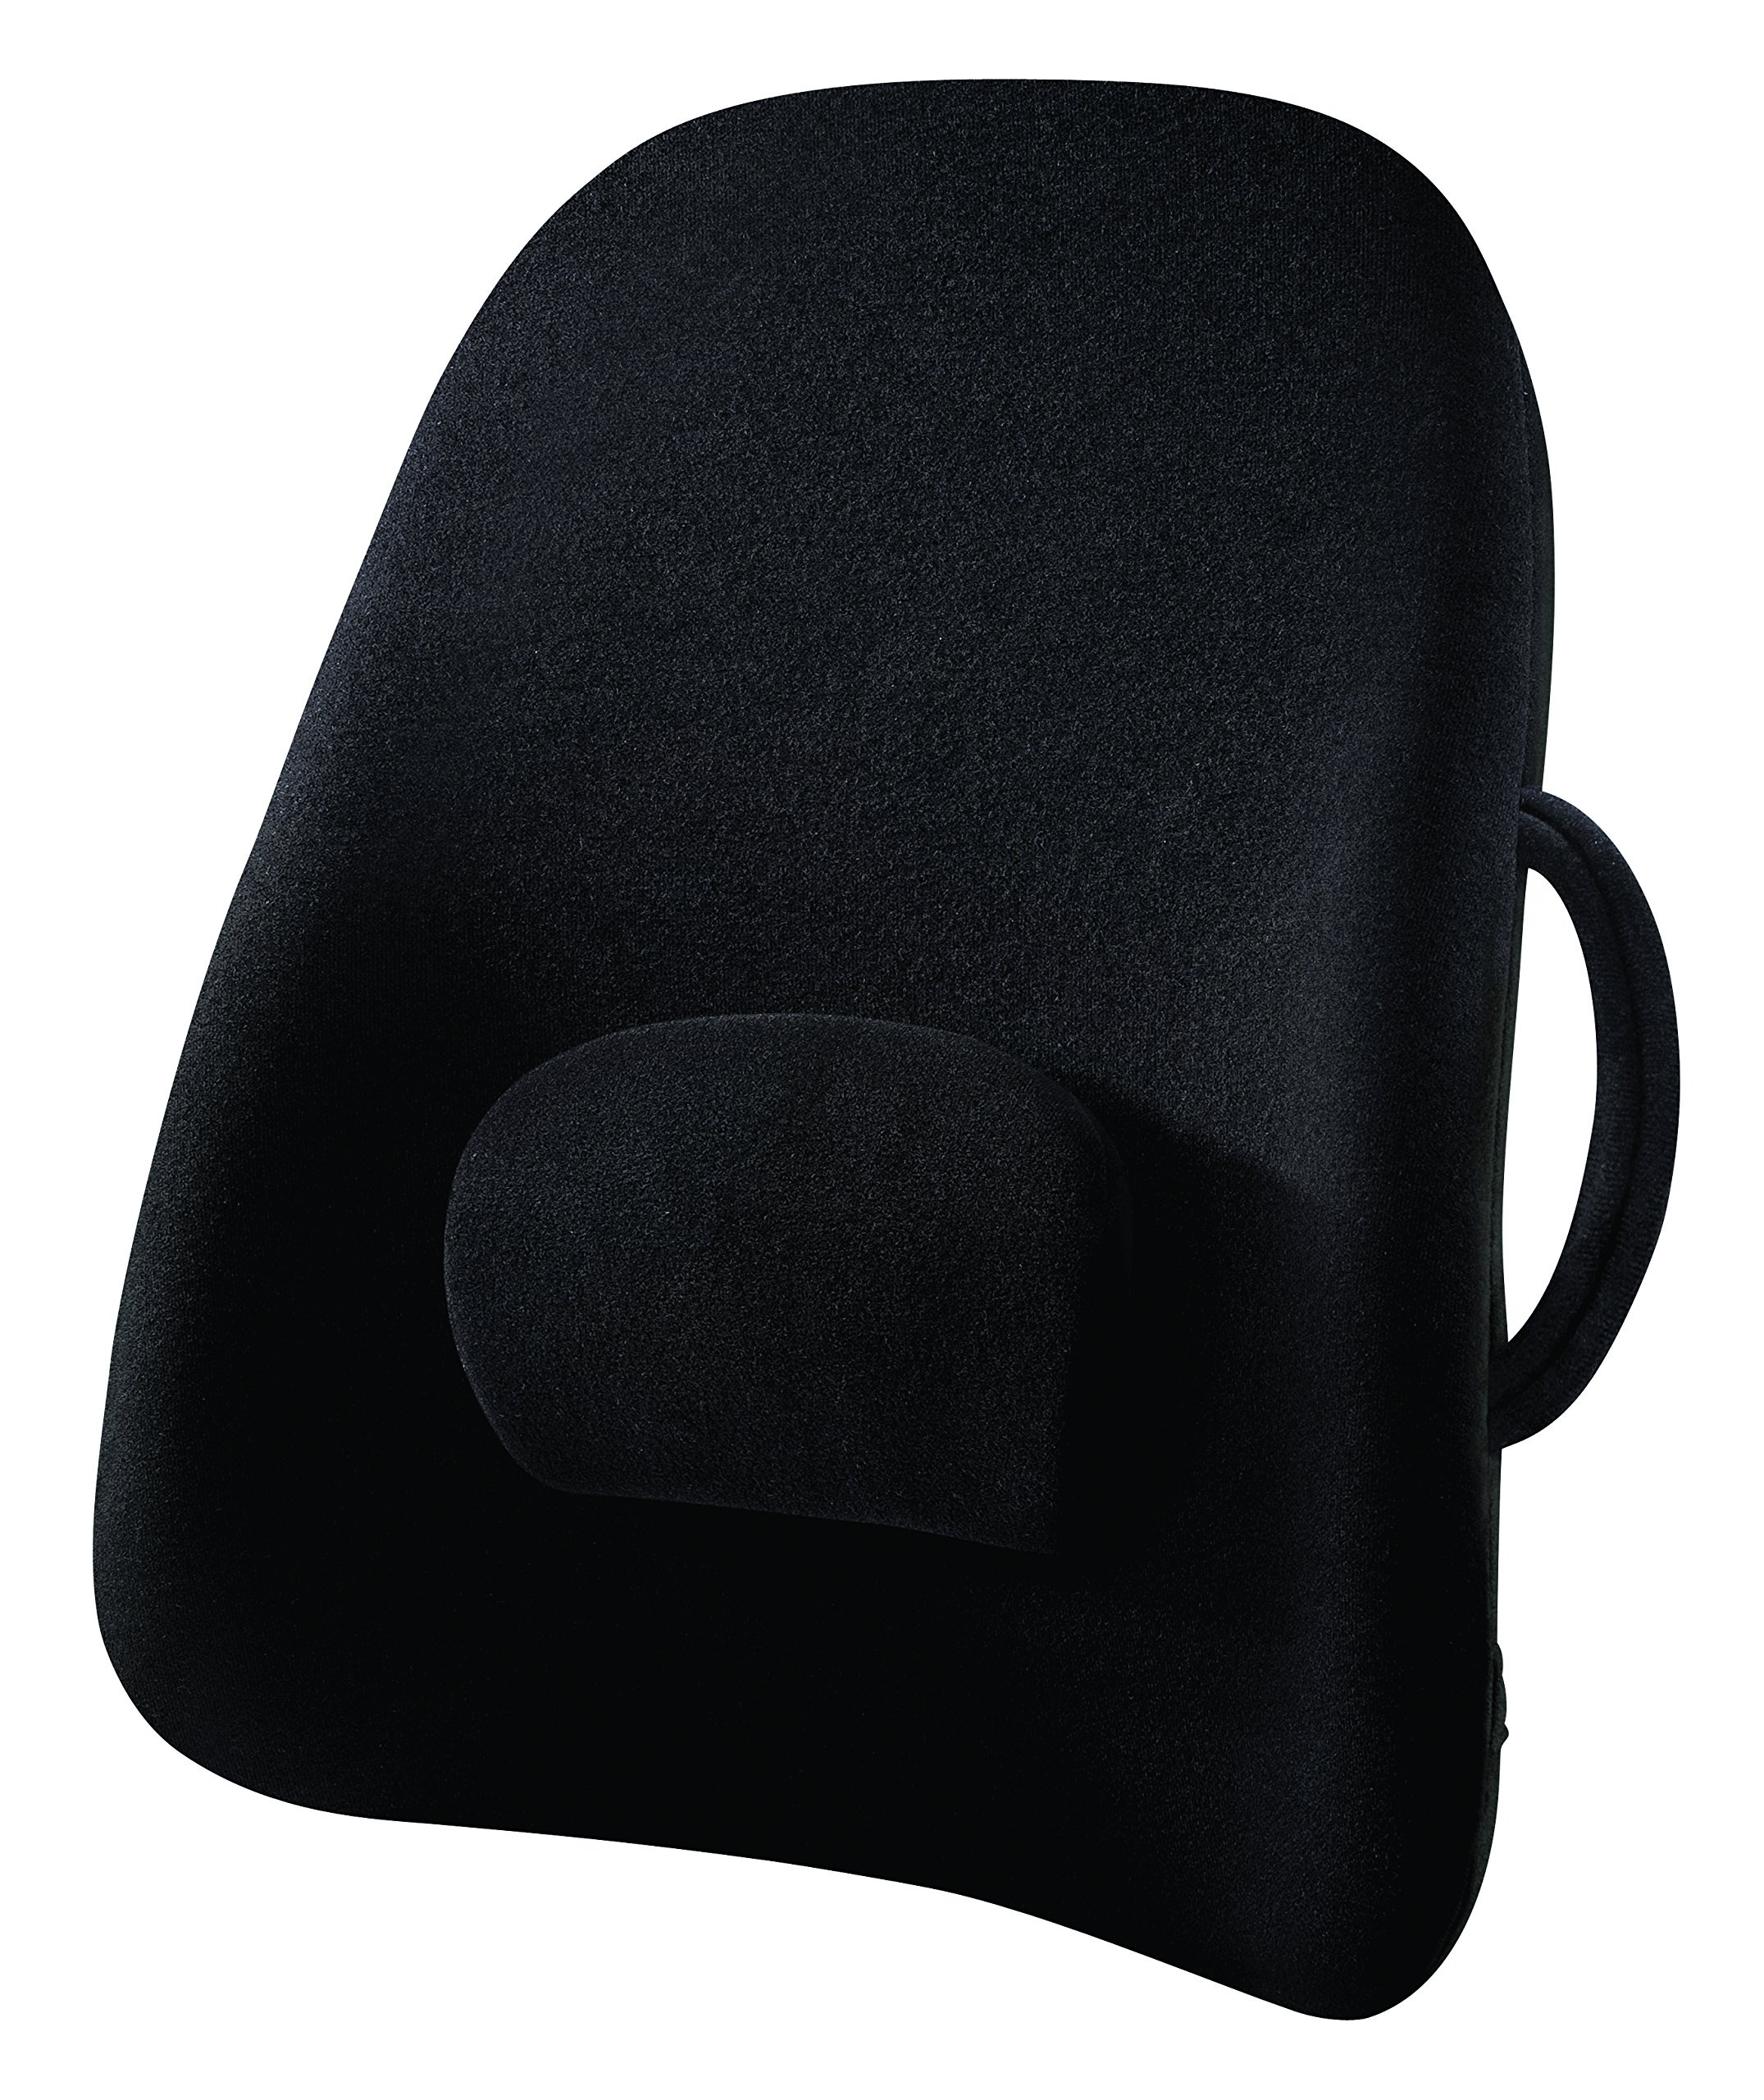 ObusForme Wideback Backrest Support Engineered For The Human Body, Removable & Adjustable Lumbar Support, Reduce Pressure On Your Back, Extra Wide For Broader Backs, S Shape Back Support by ObusForme